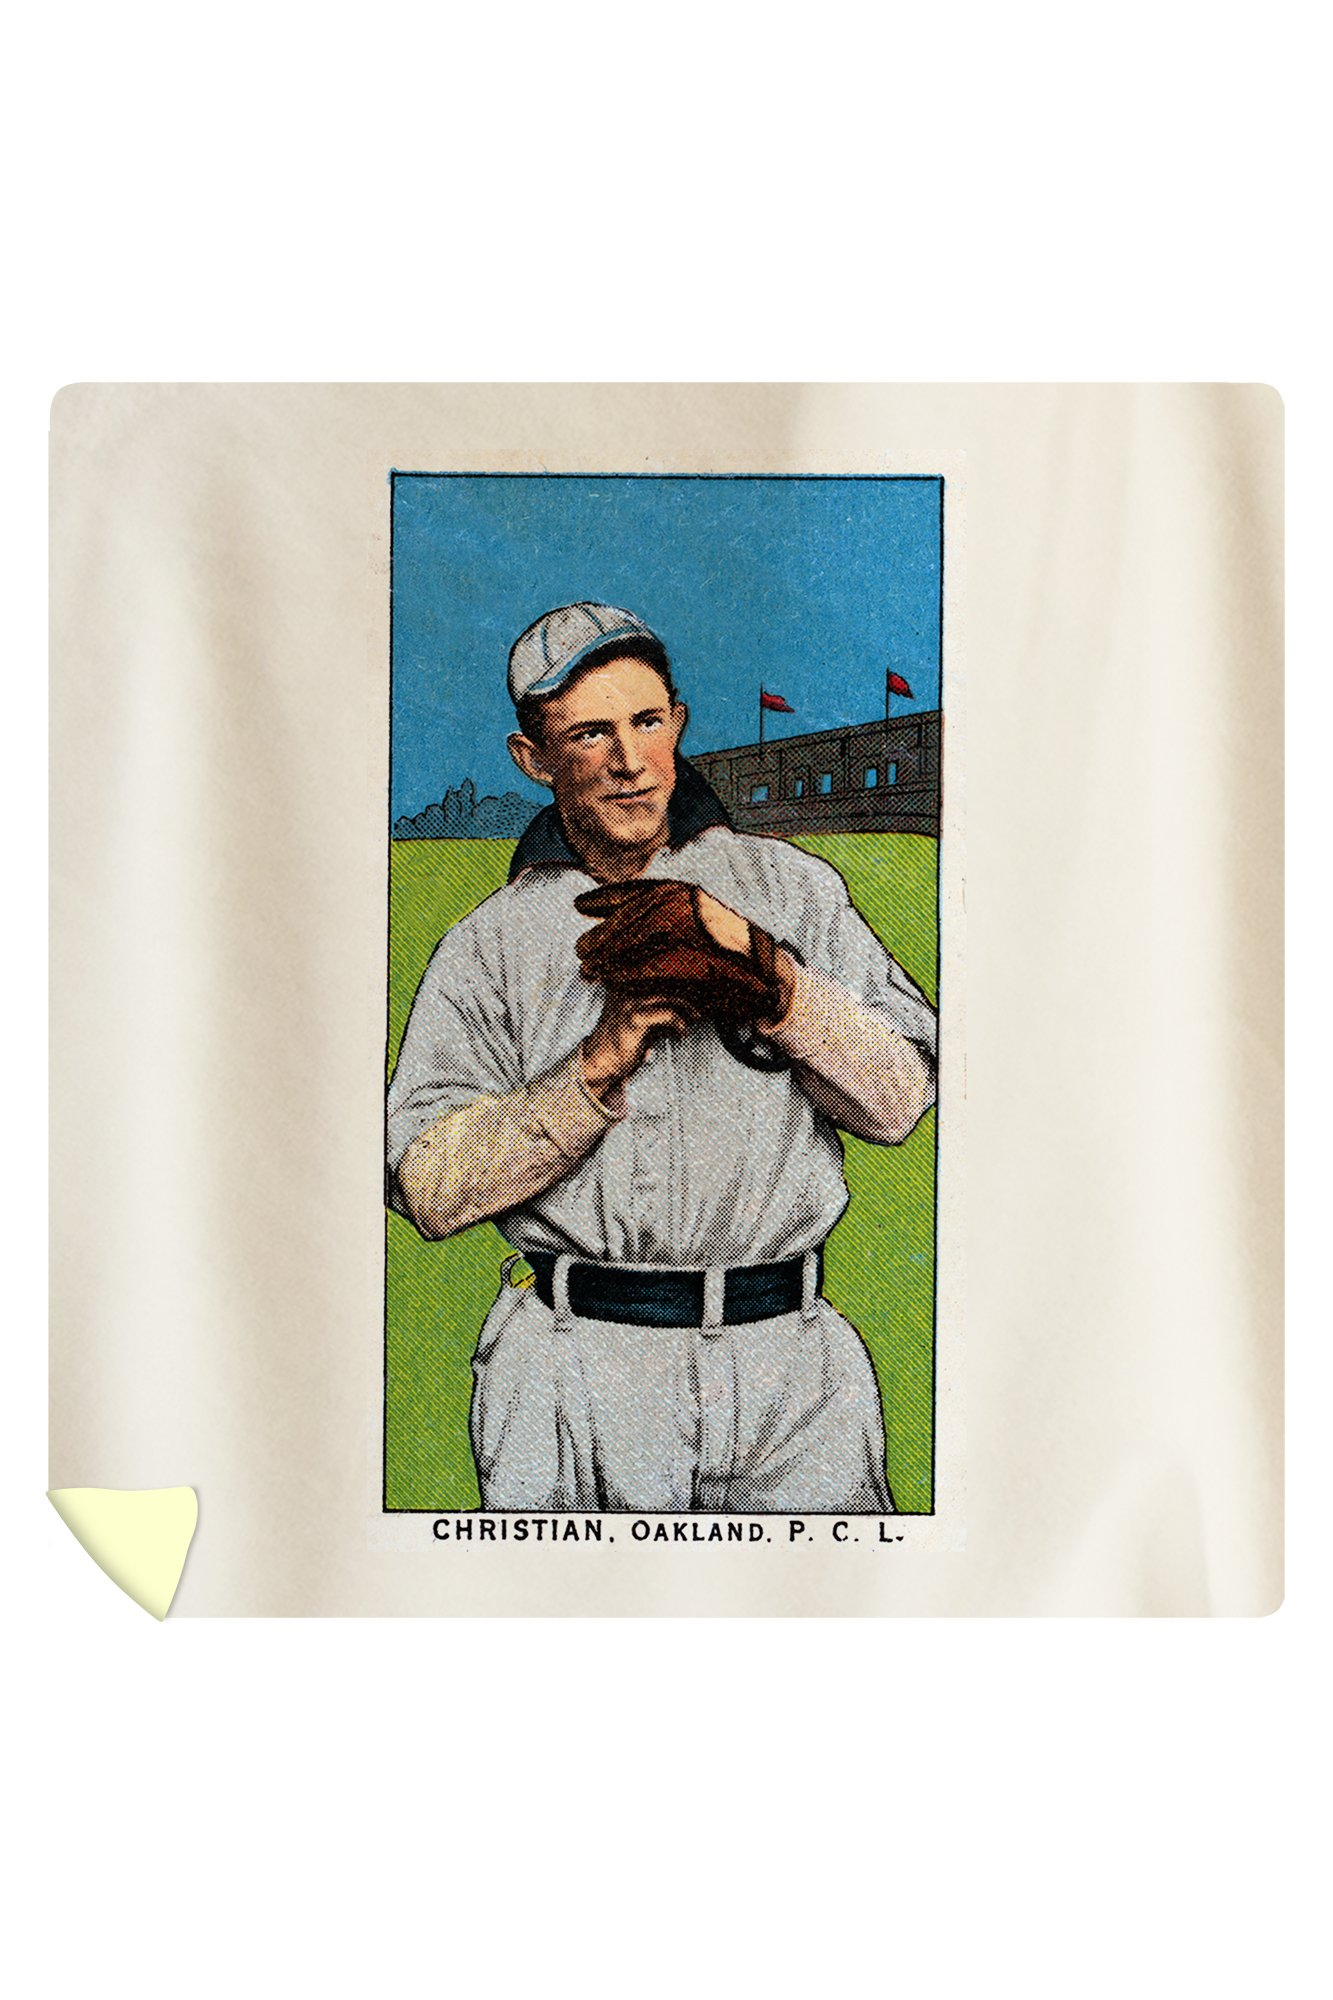 Oakland Pacific Coast League - Christian - Baseball Card (88x88 Queen Microfiber Duvet Cover) by Lantern Press